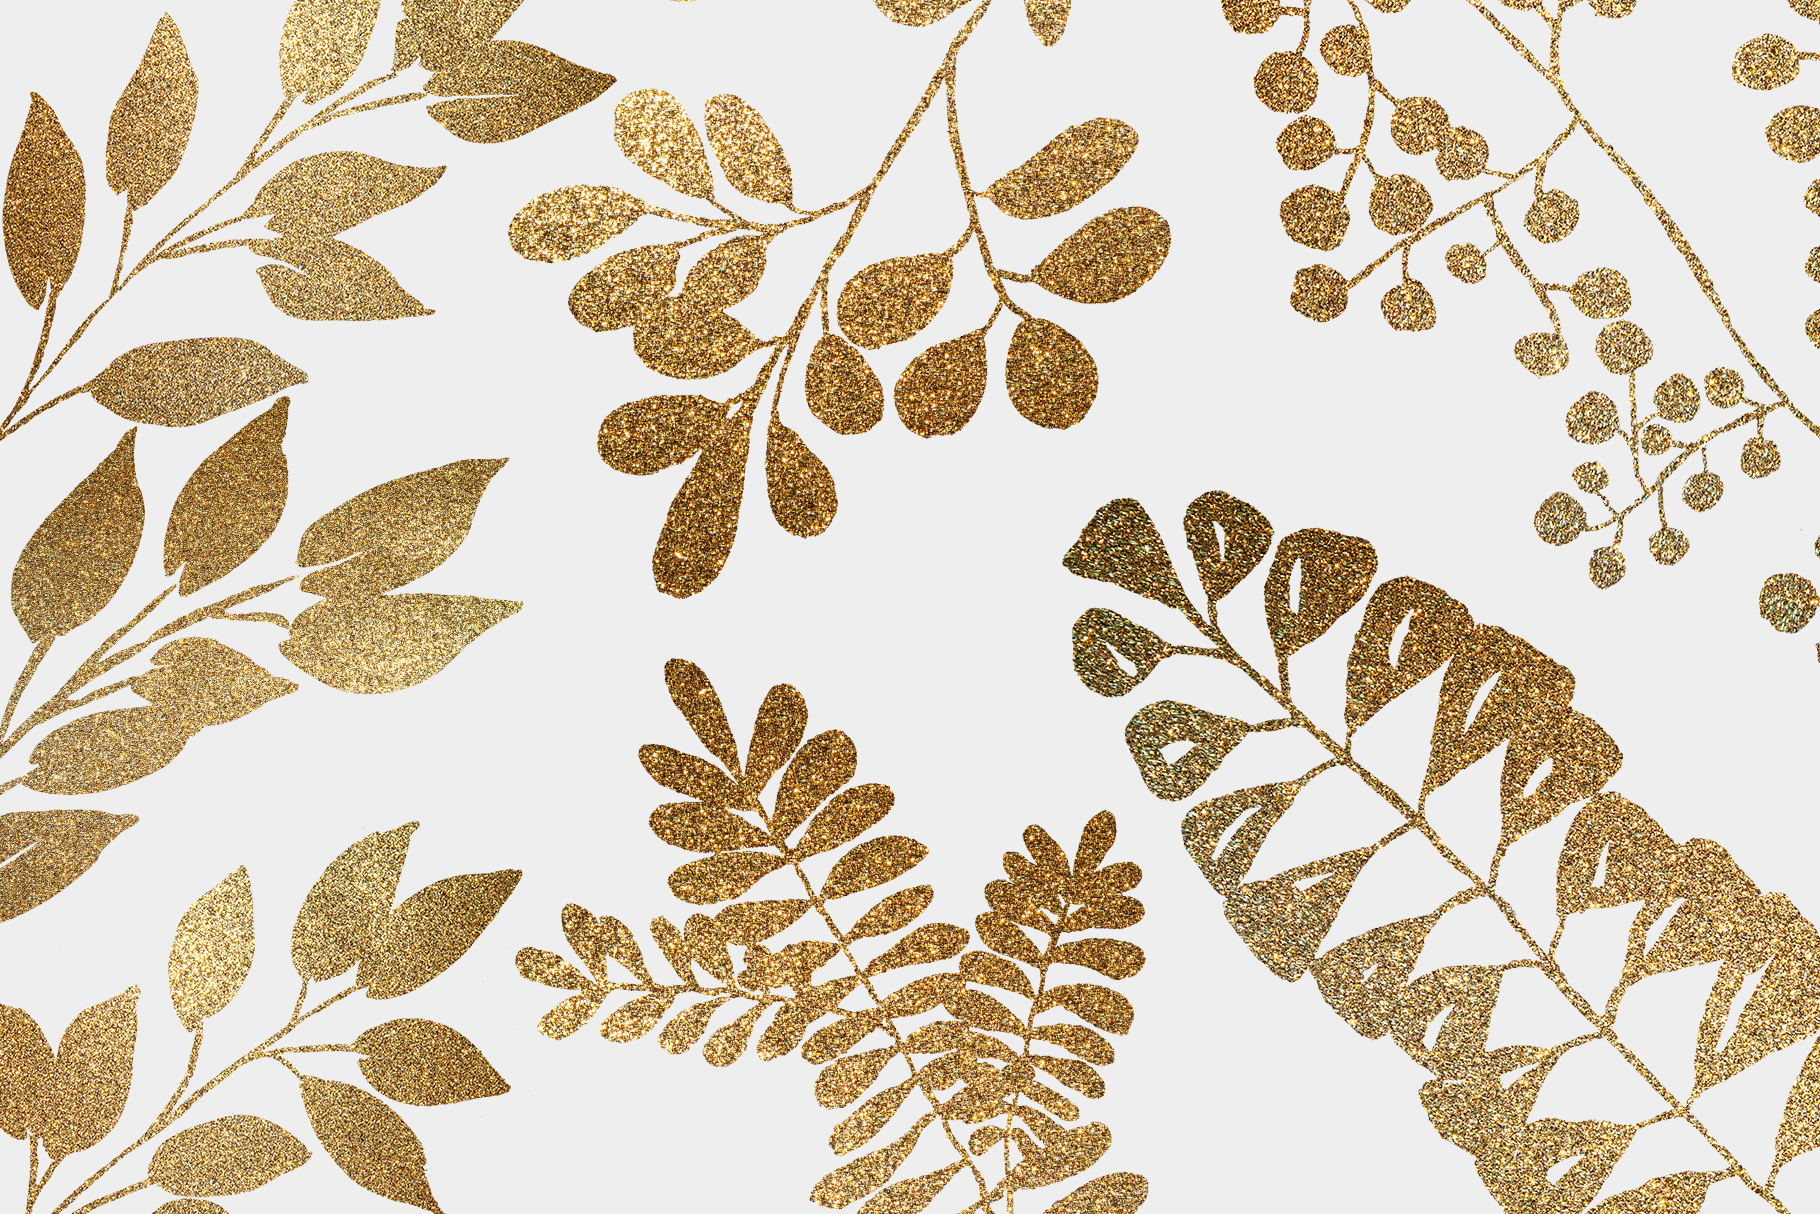 Gold leaves and wreaths, gold foil leaves clip art example image 2